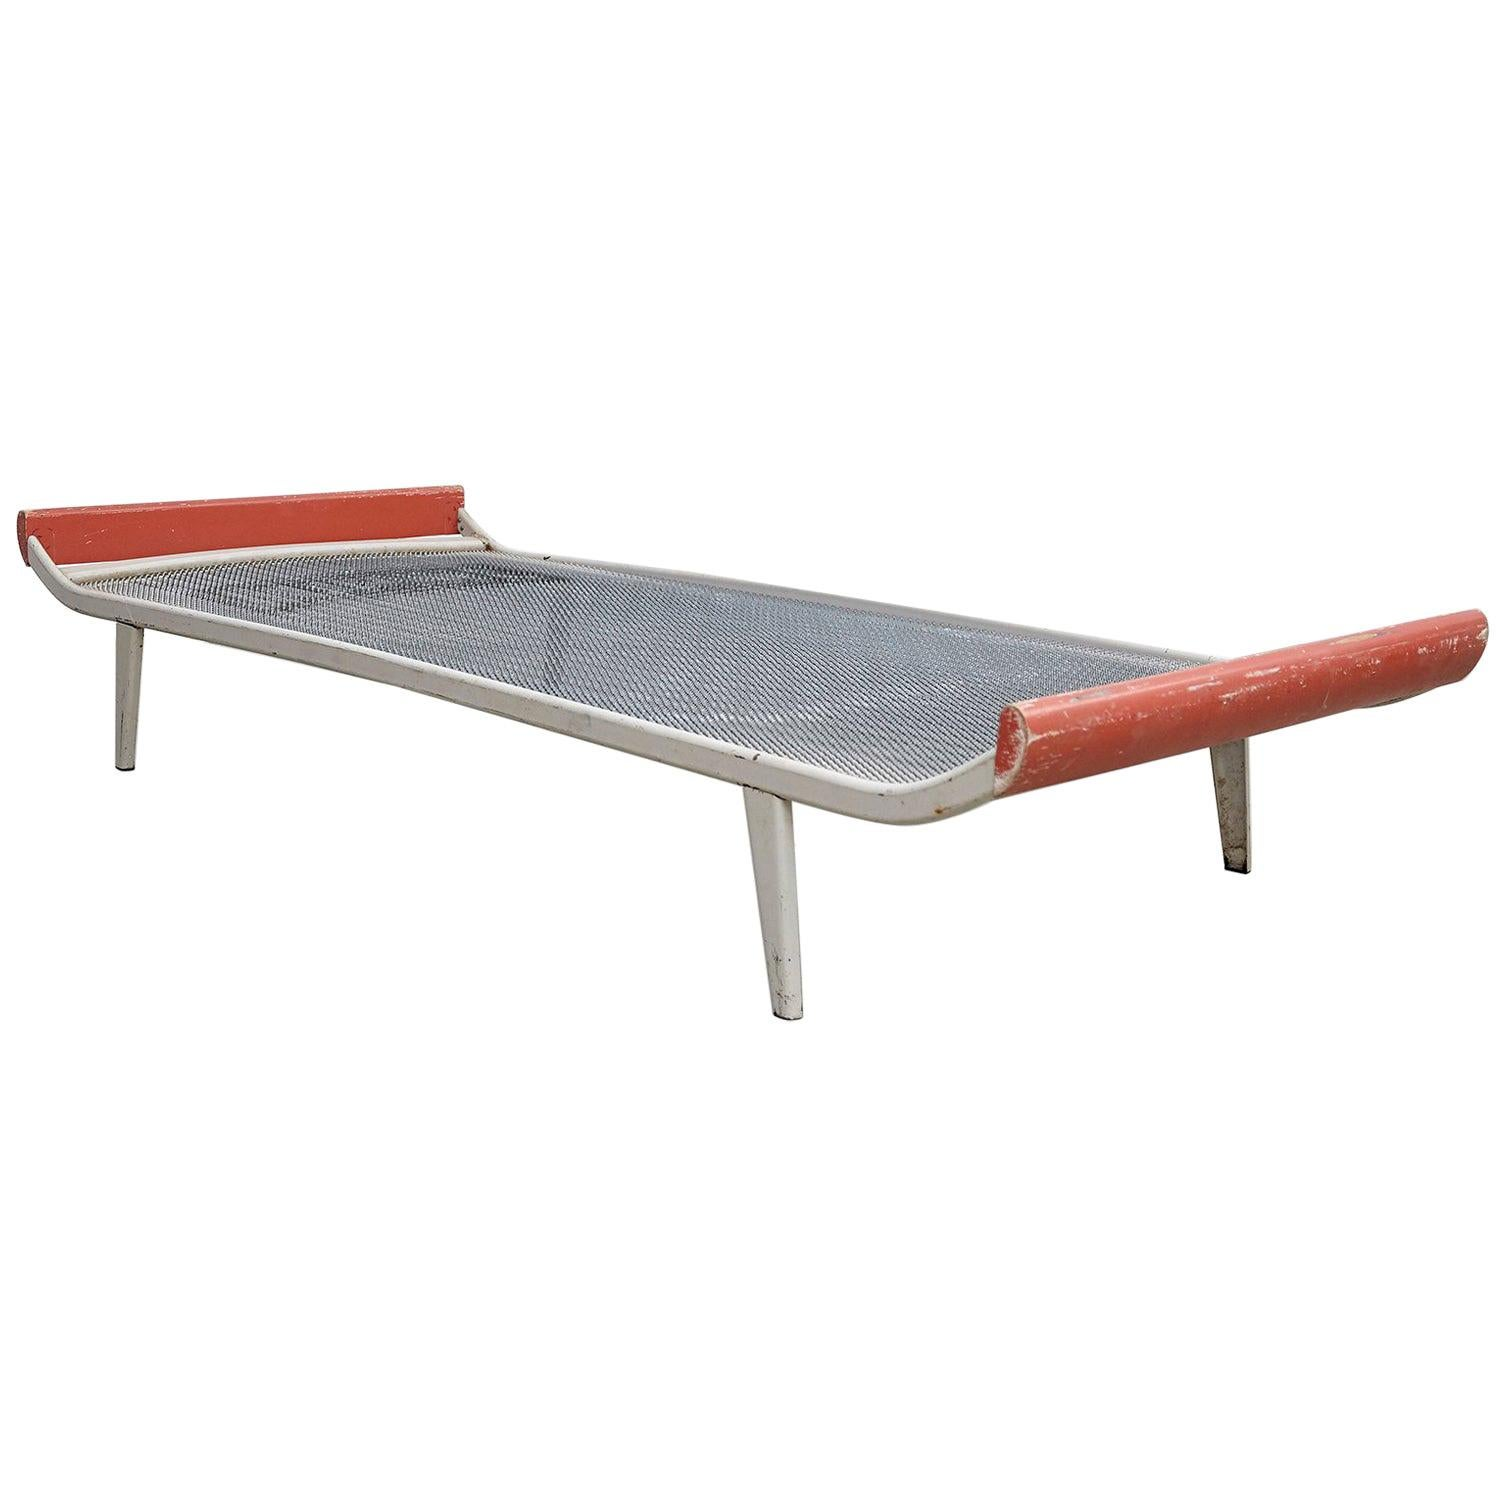 Dick Cordemeijer Mid-Century Modern Metal and Wood Daybed Cleopatra, circa 1950